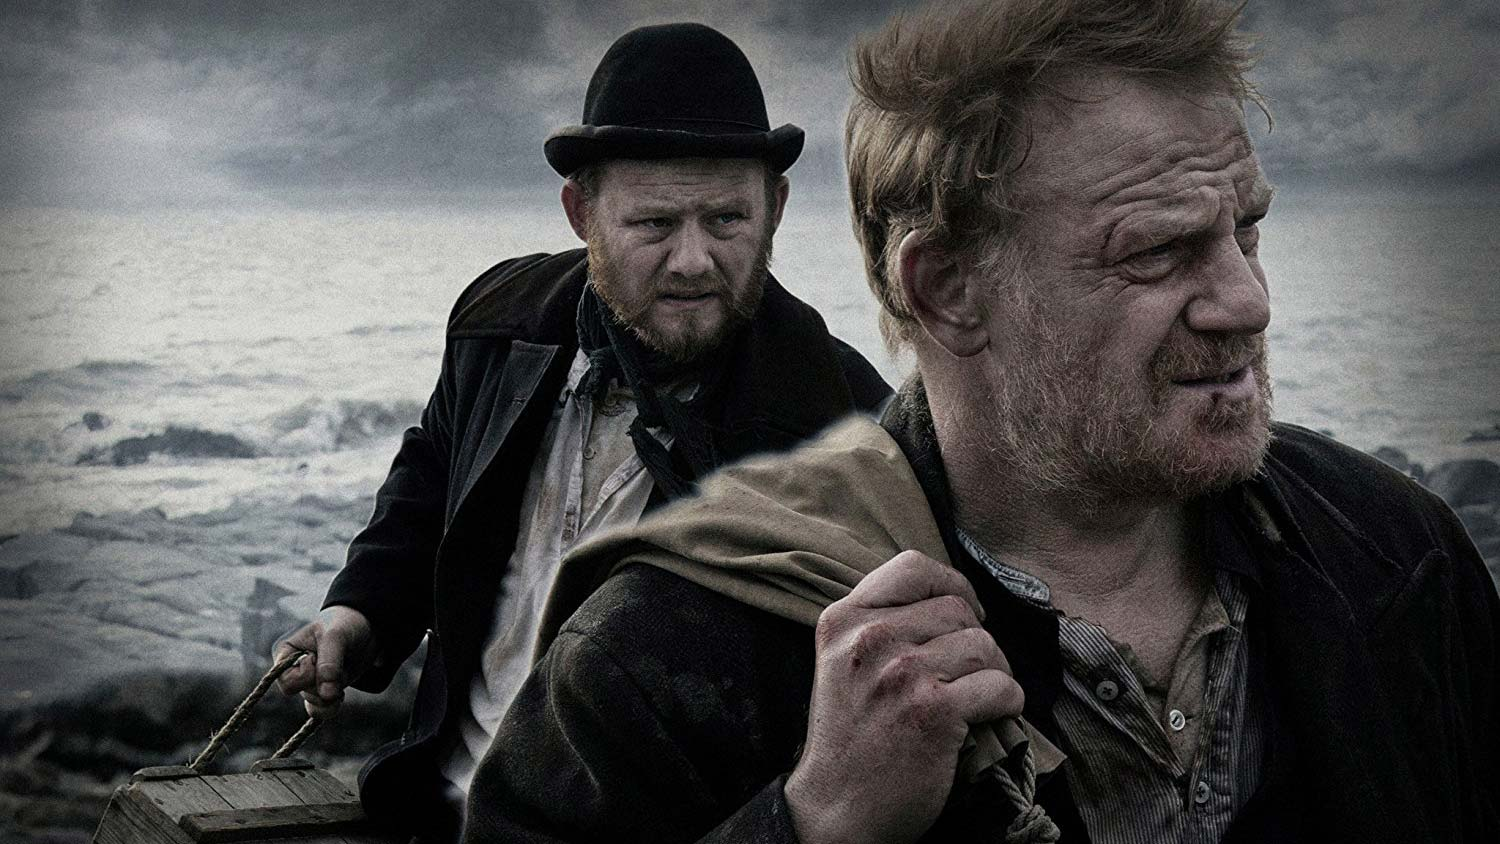 The Lighthouse Review – Stuck Here, On This Island - OC Movie Reviews - Movie Reviews, Movie News, Documentary Reviews, Short Films, Short Film Reviews, Trailers, Movie Trailers, Interviews, film reviews, film news, hollywood, indie films, documentaries